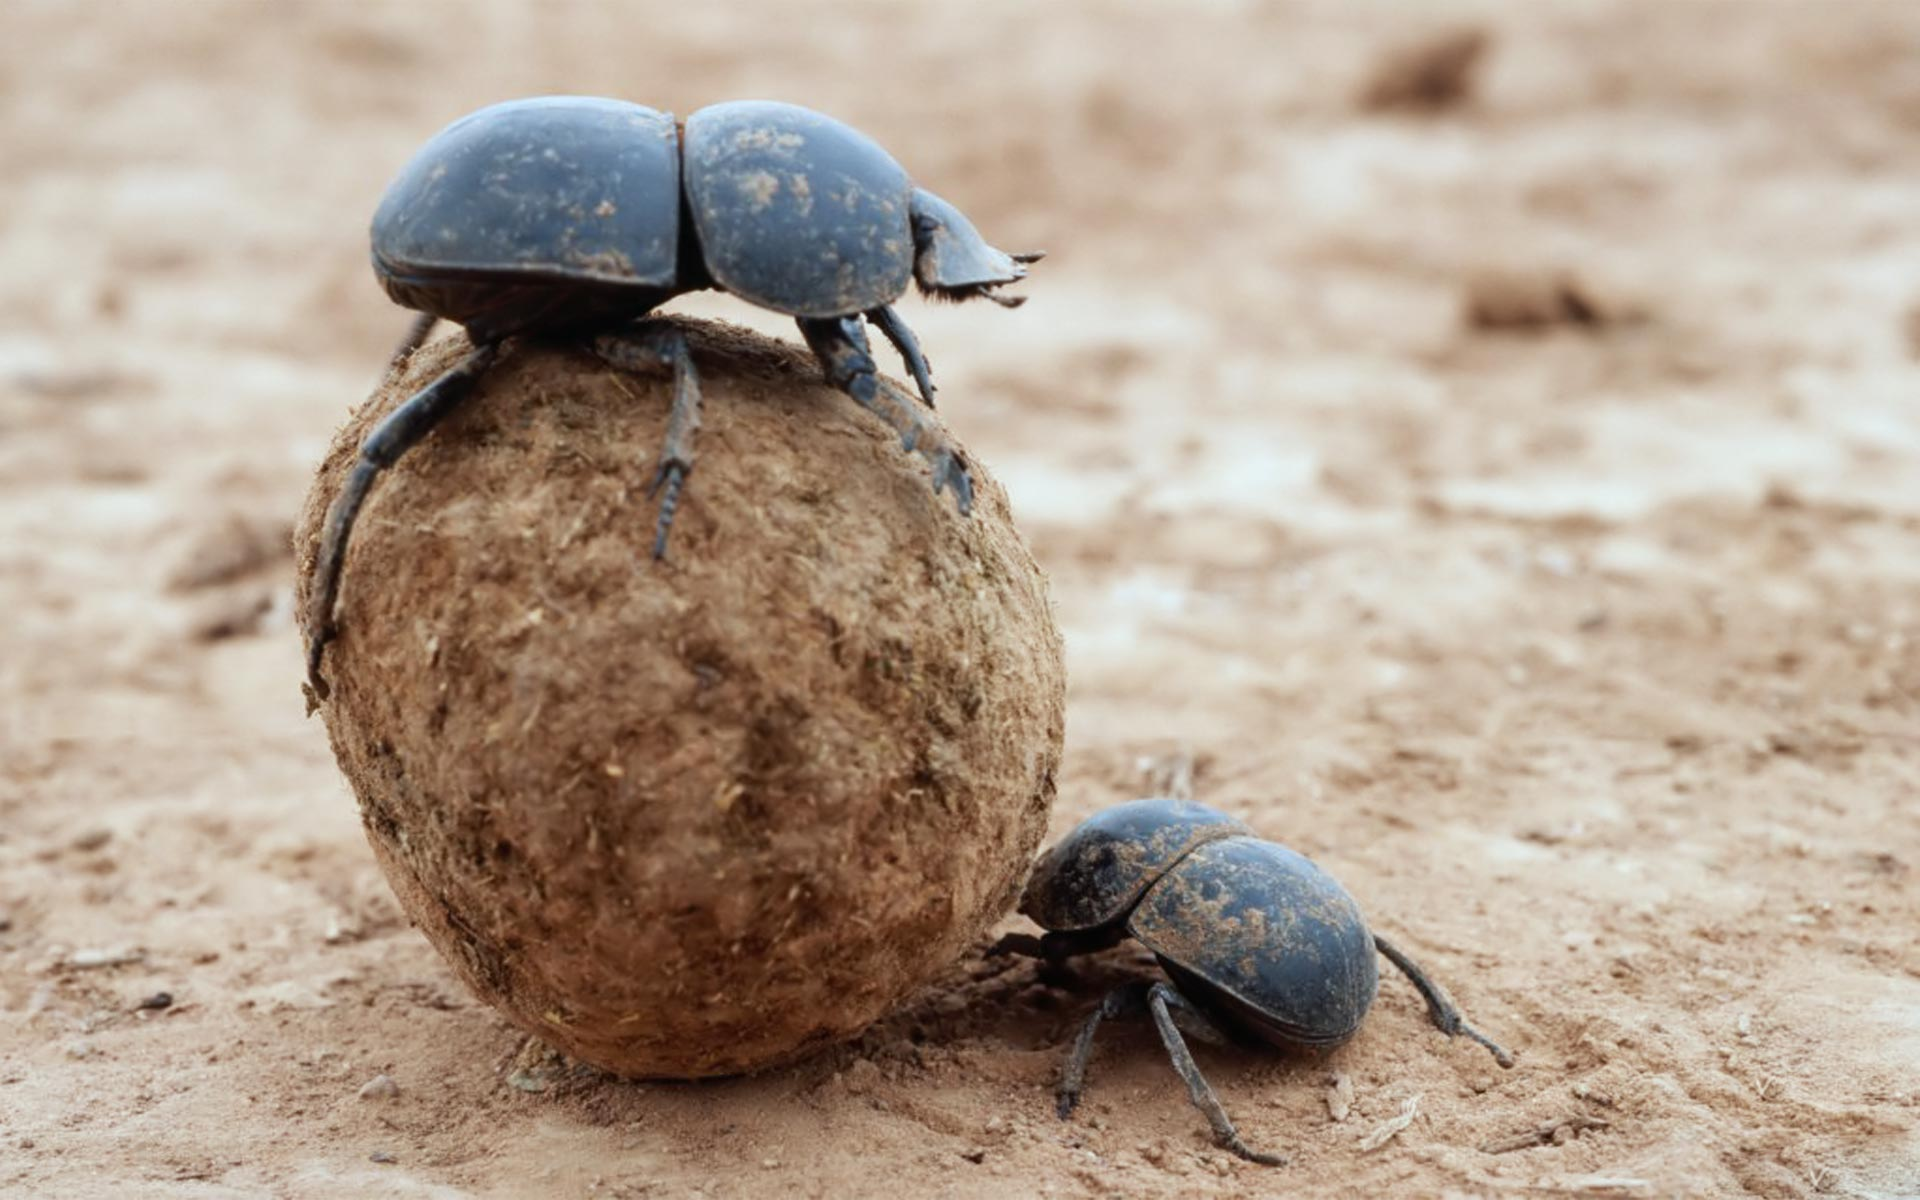 High Resolution Wallpaper | Dung Beetle 1920x1200 px